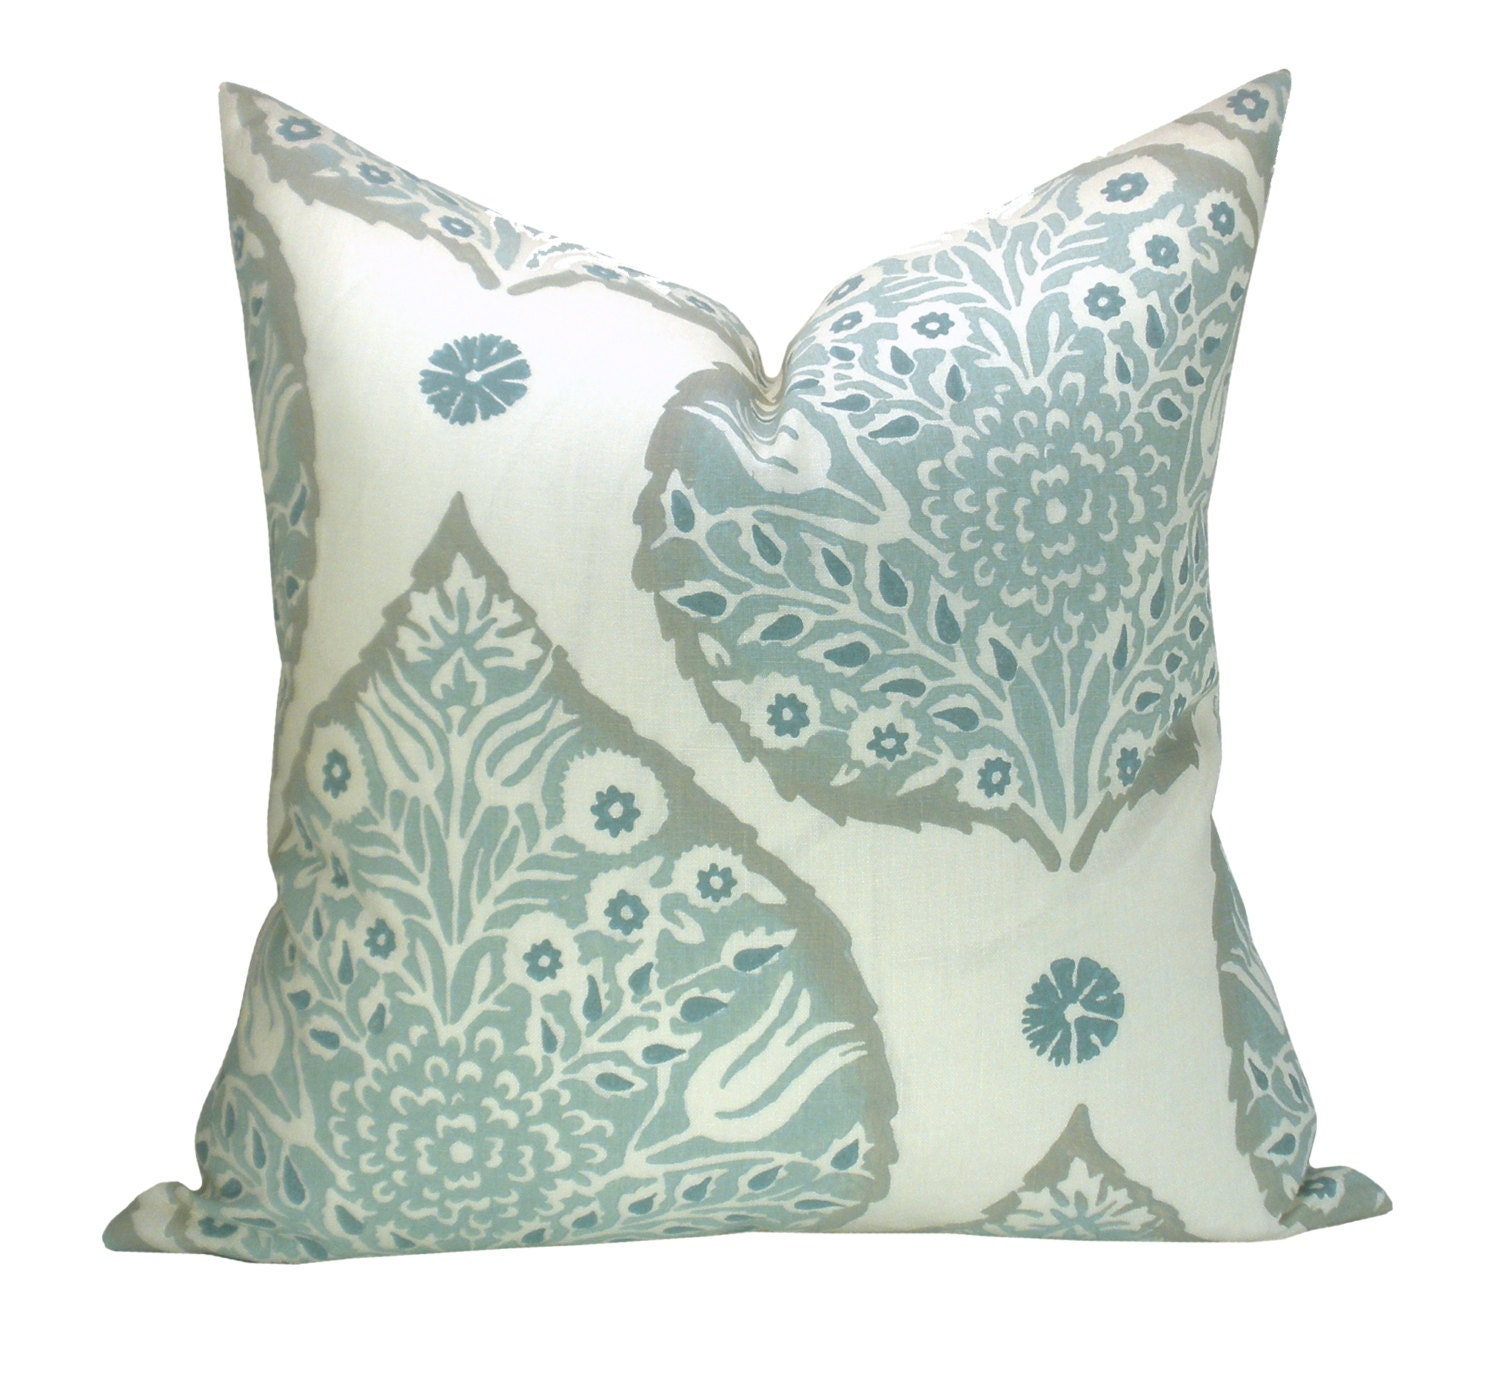 Modern Lotus Pillow : Lotus pillow cover in Mineral on Cream Linen